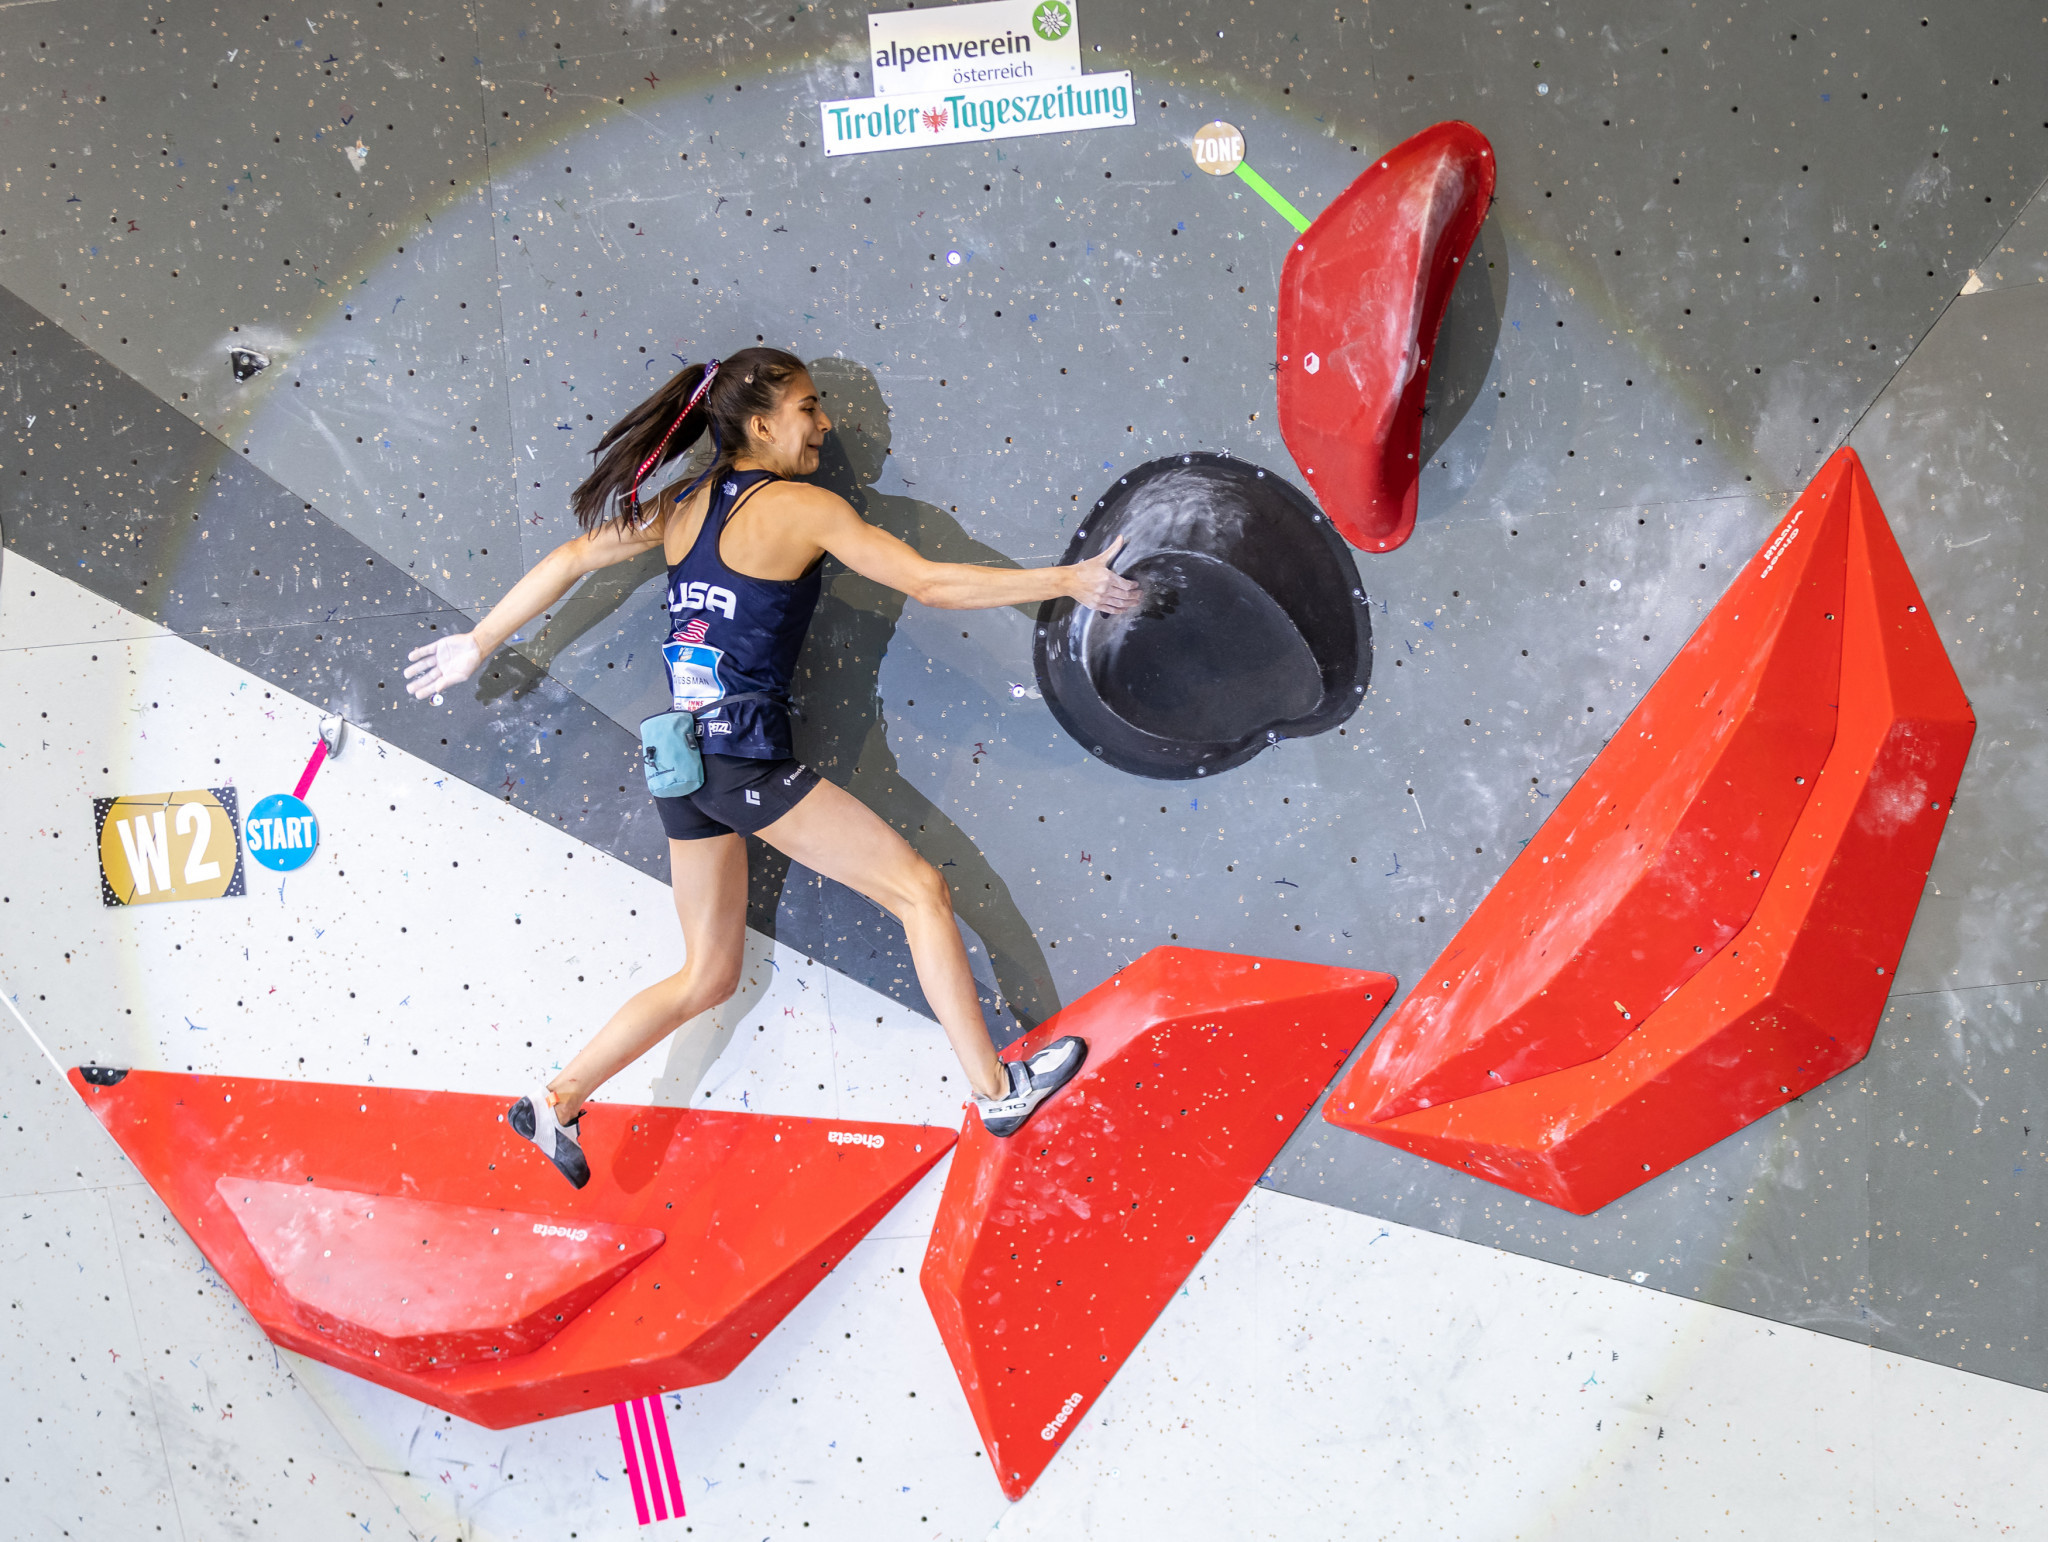 Grossman crowned women's bouldering champion at IFSC World Championships